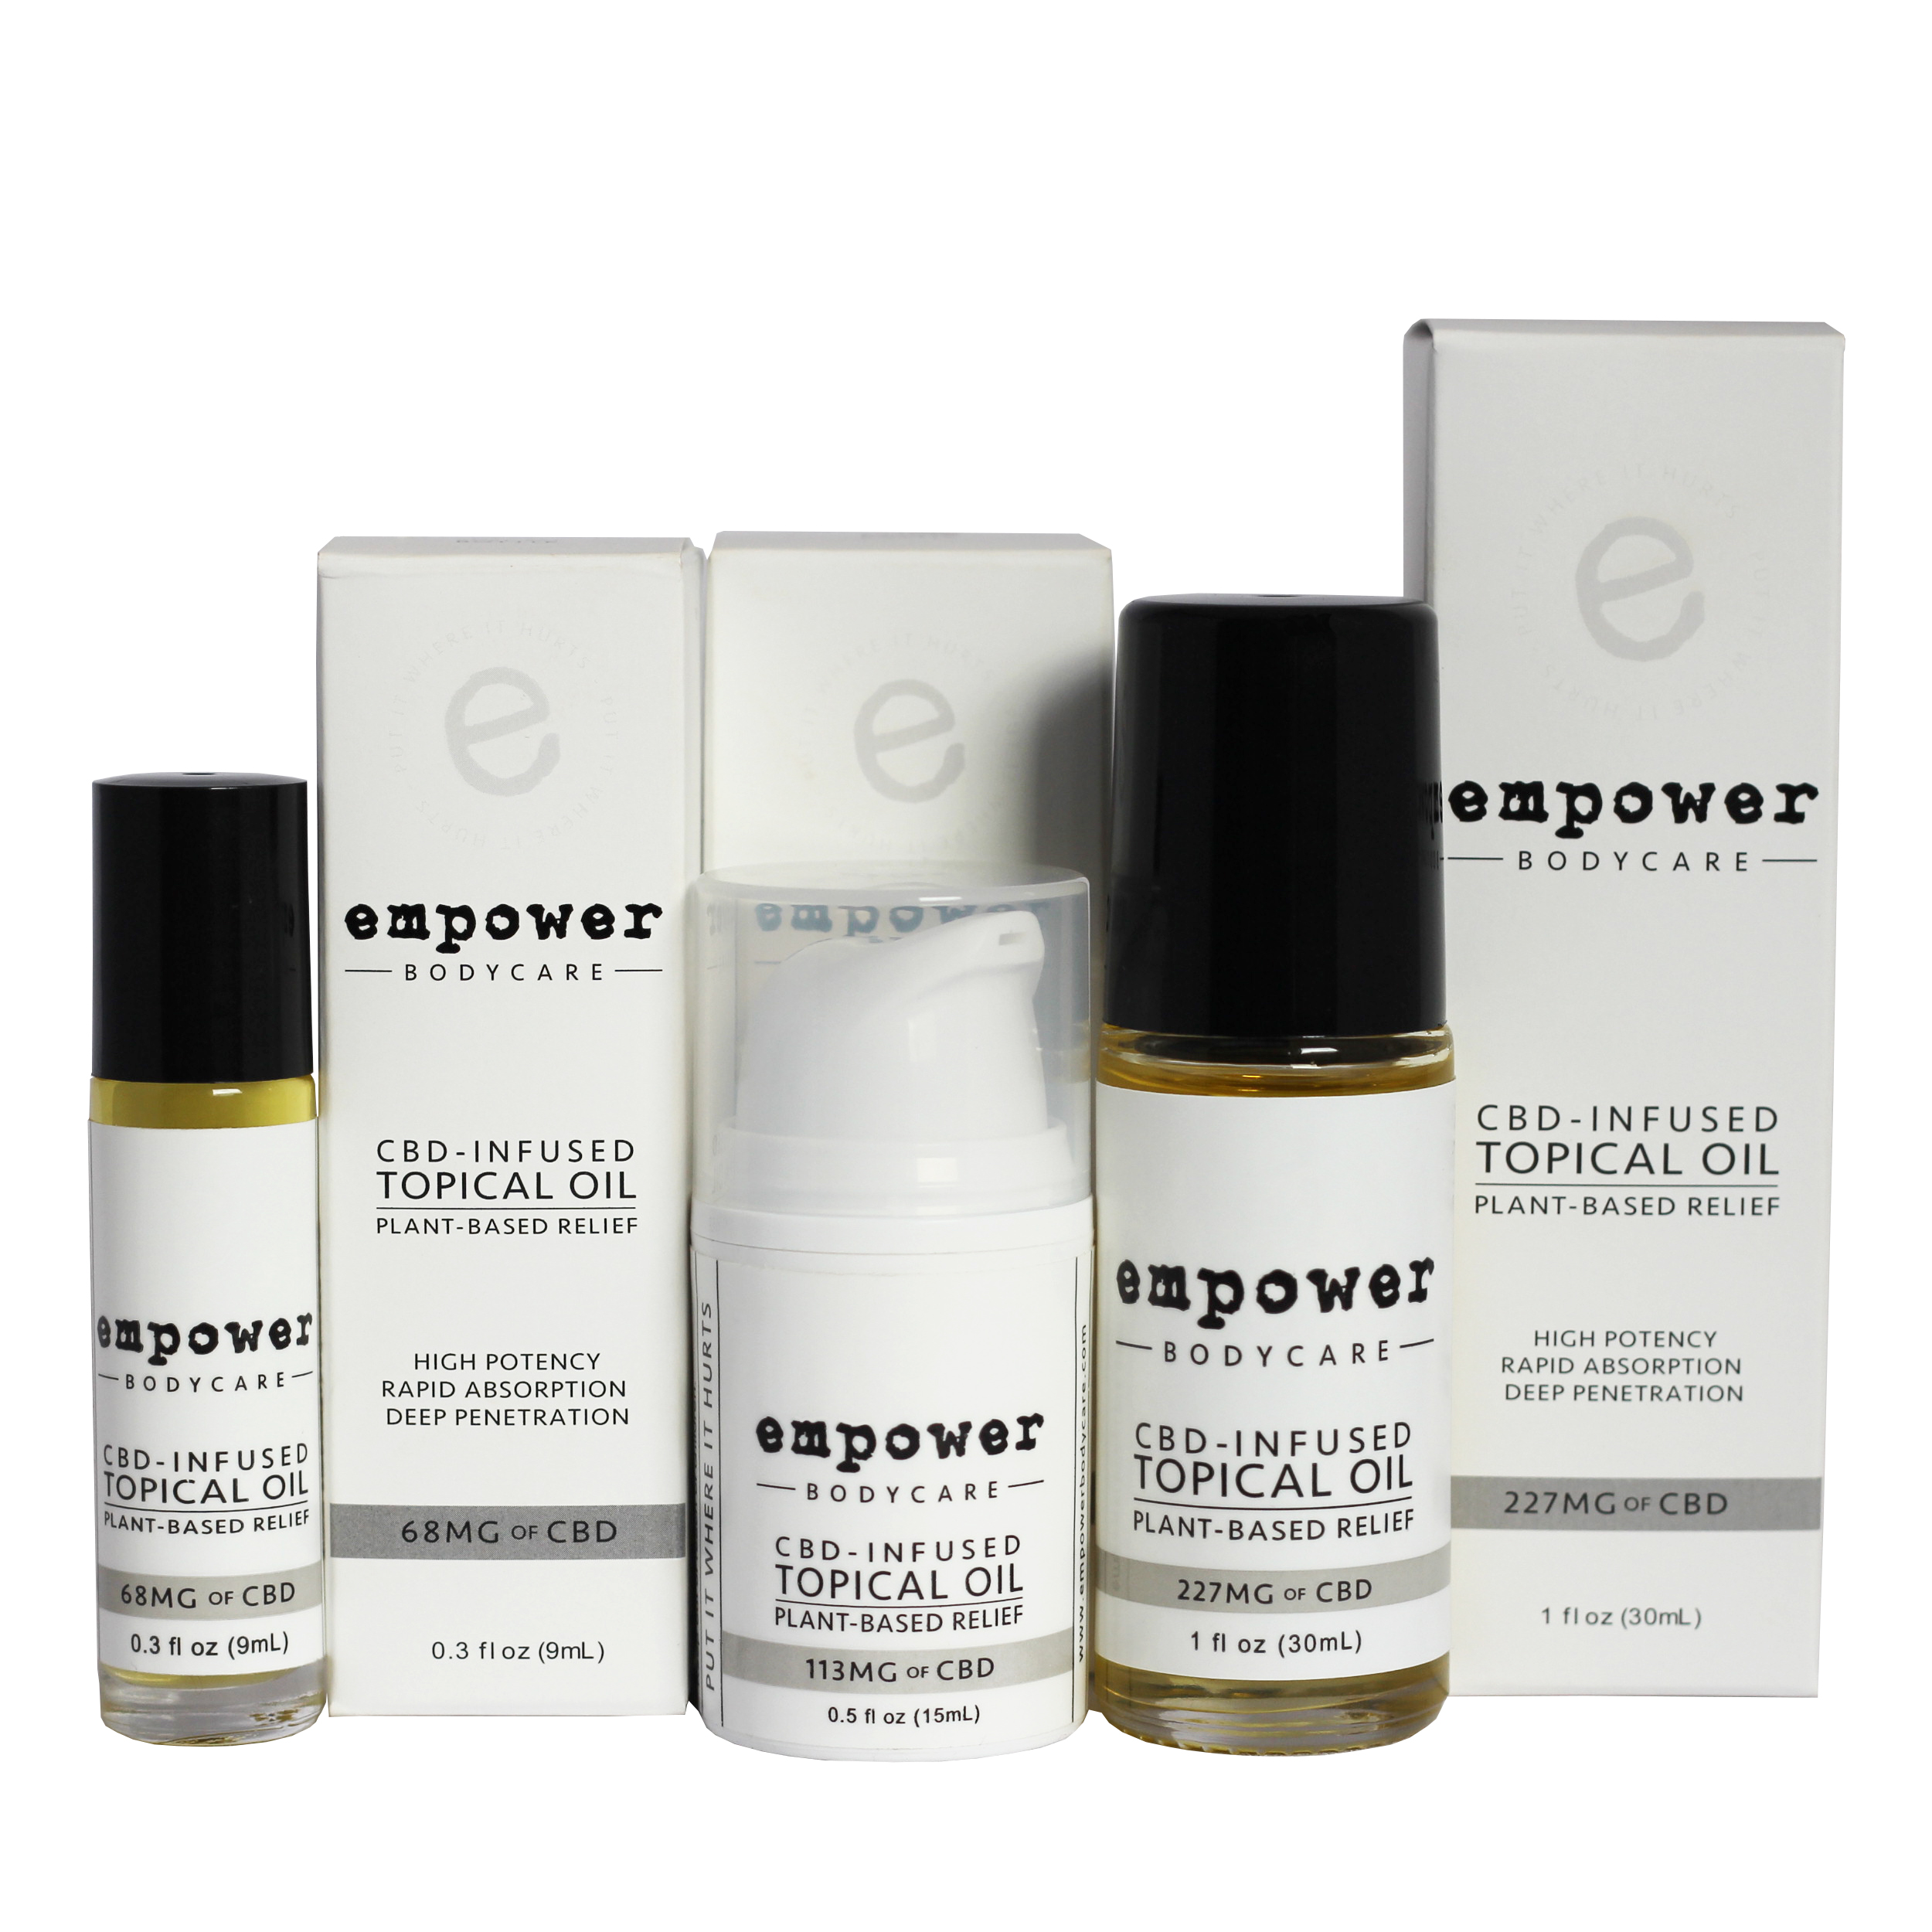 Empower Topical Relief Oil.jpg